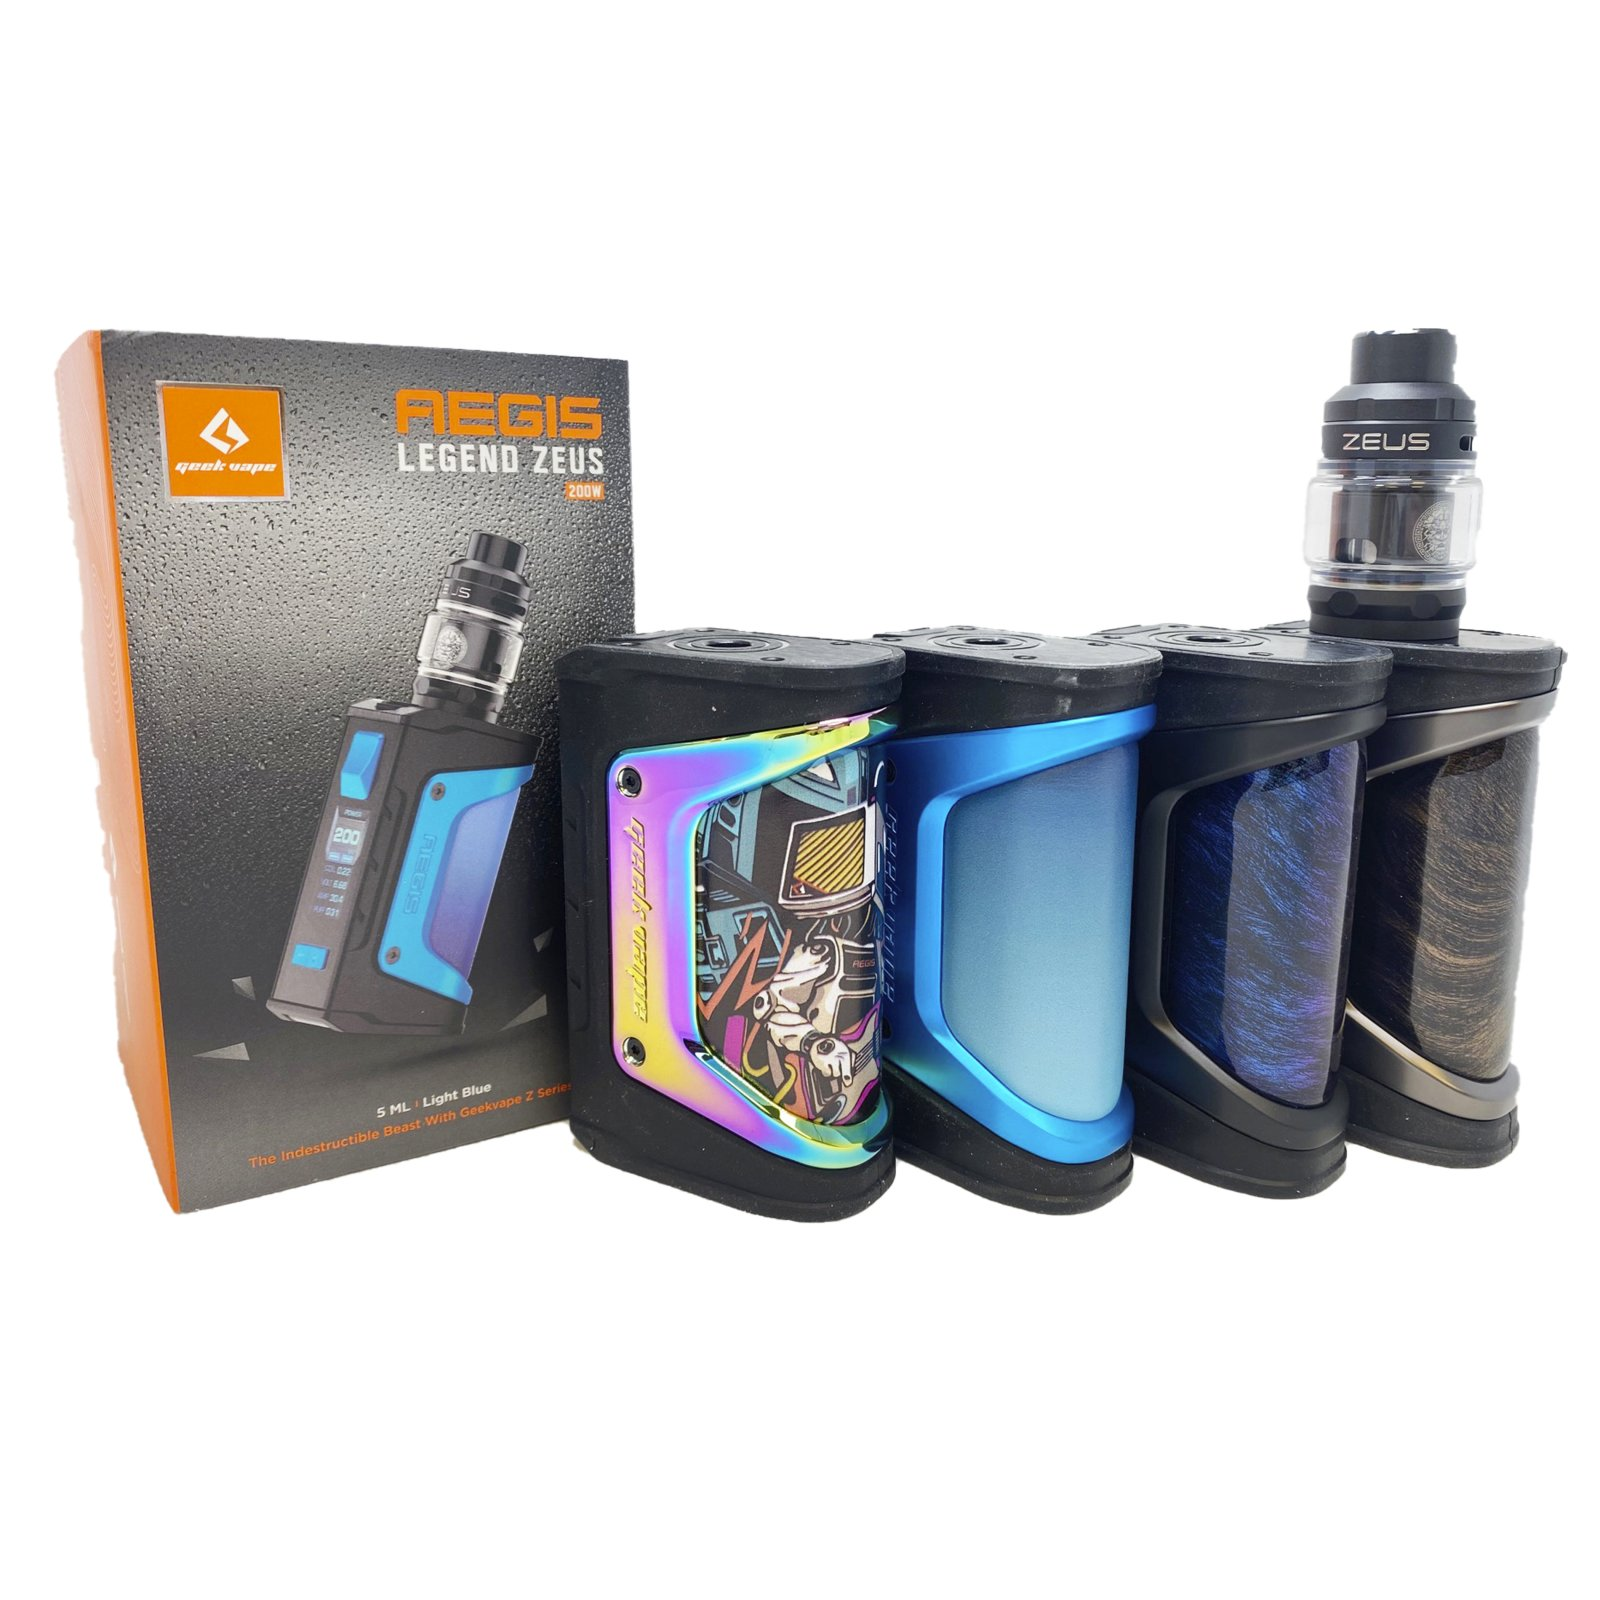 GeekVape Aegis Legend Zeus Kit